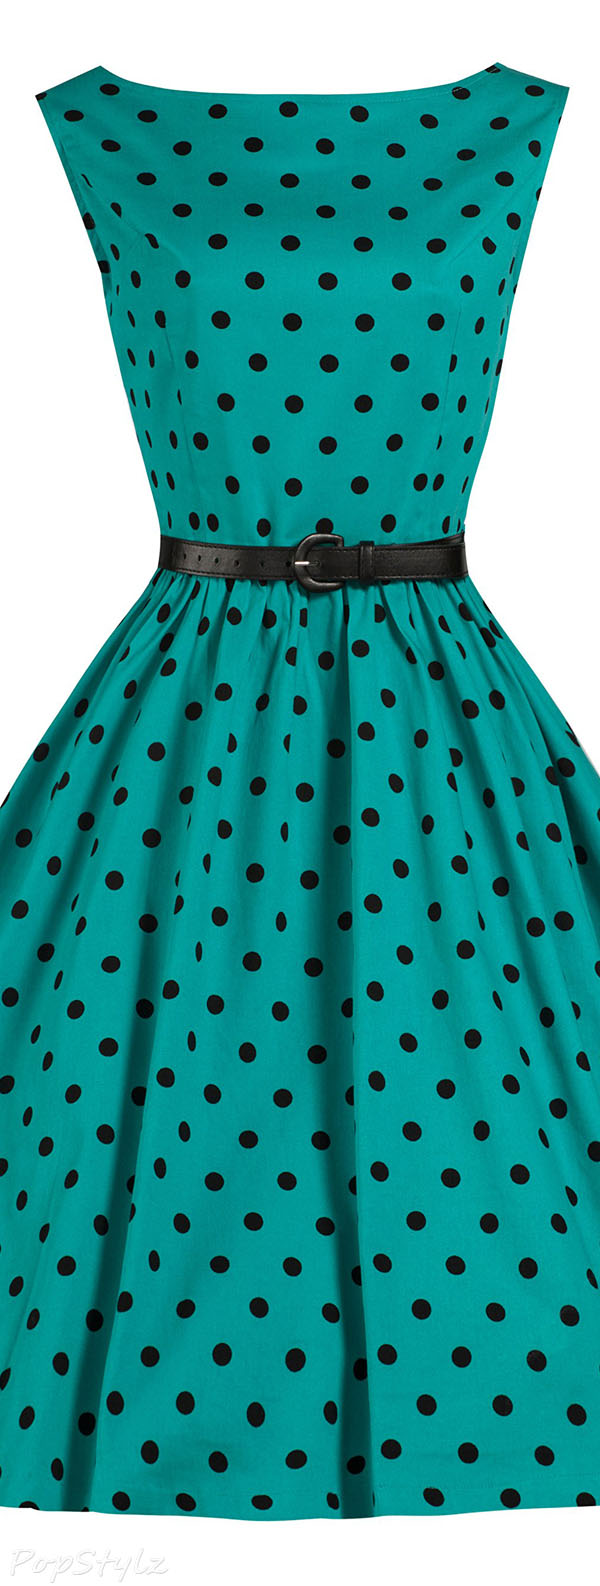 Lindy Bop 'Audrey' Vintage Polka Dot 1950's Swing/Jive Dress